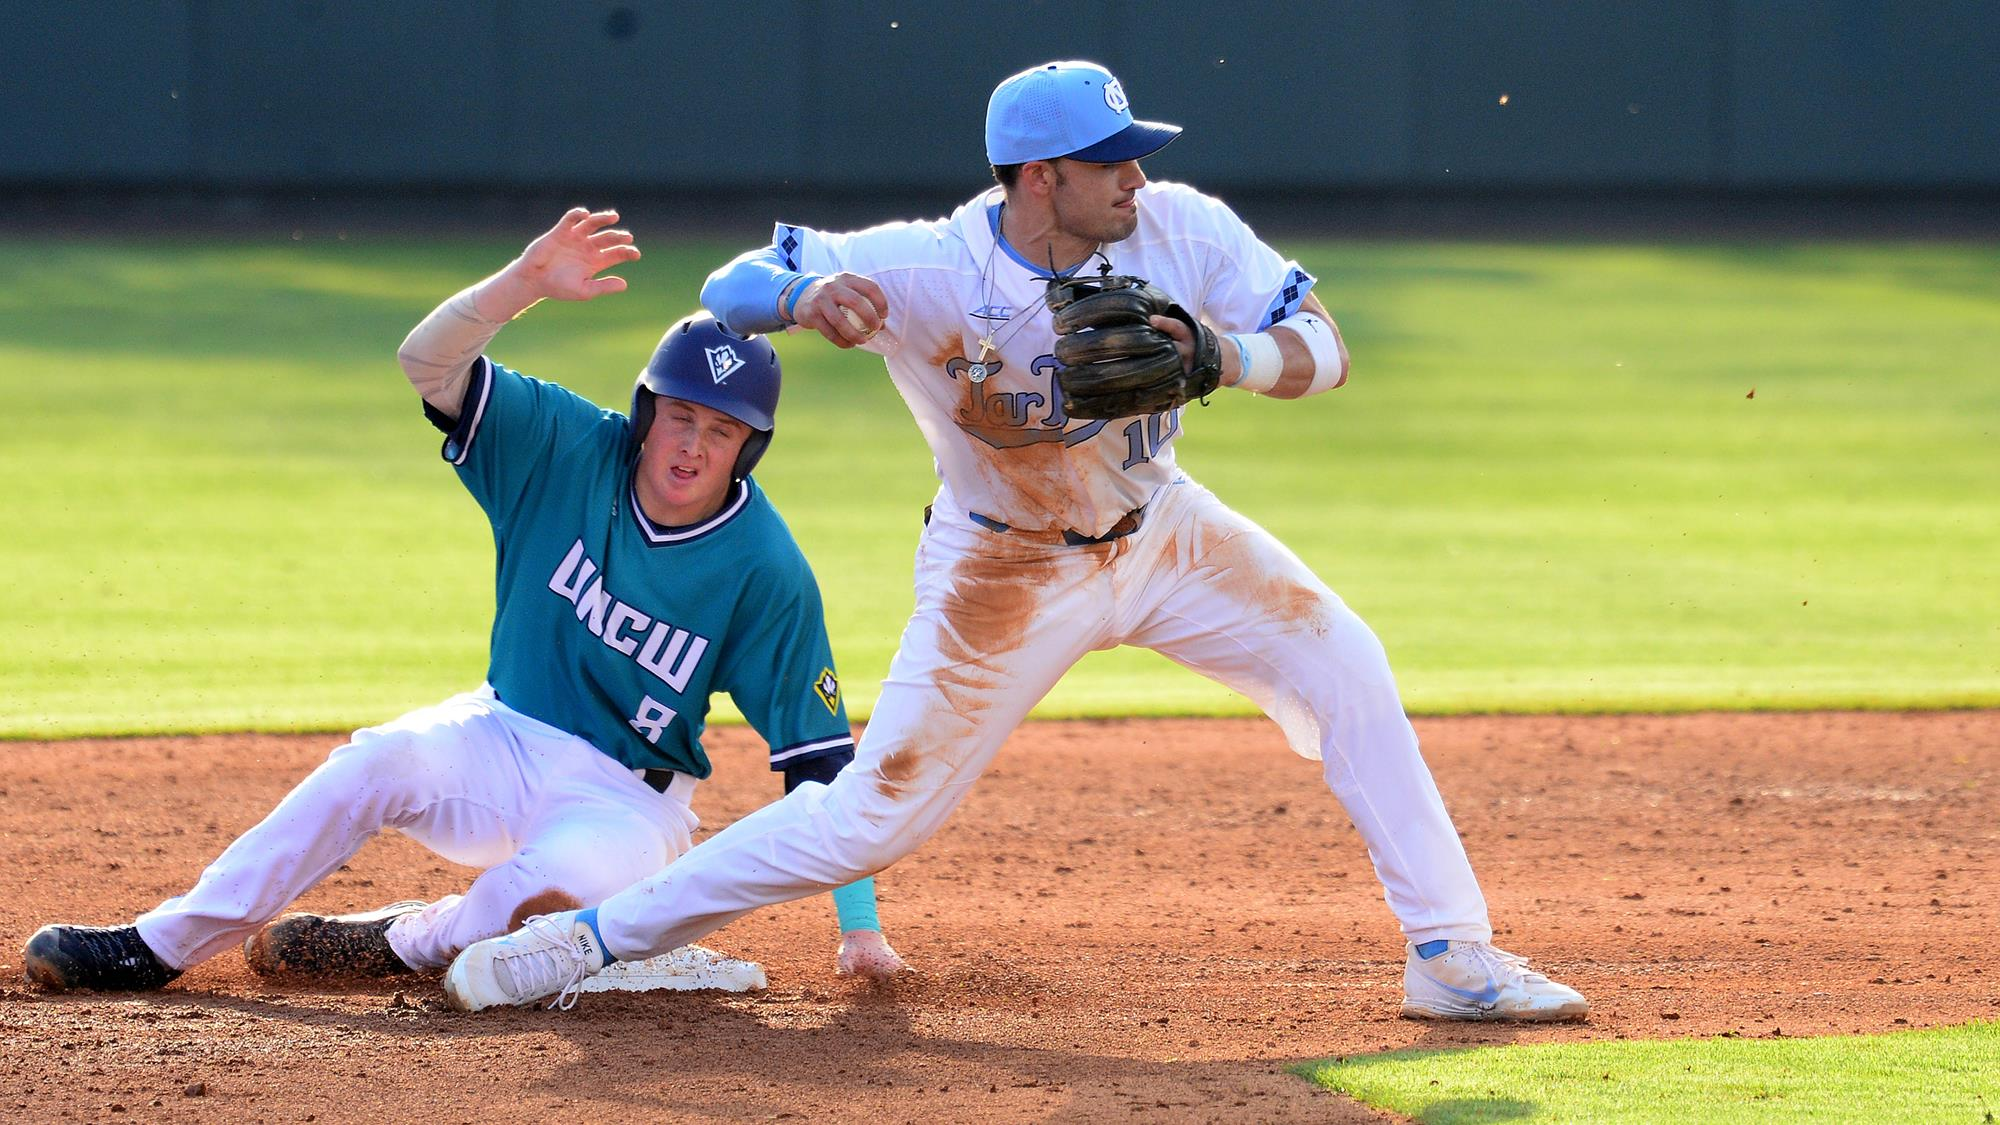 tar heels fall in home opener to uncw, 5-4 - university of north